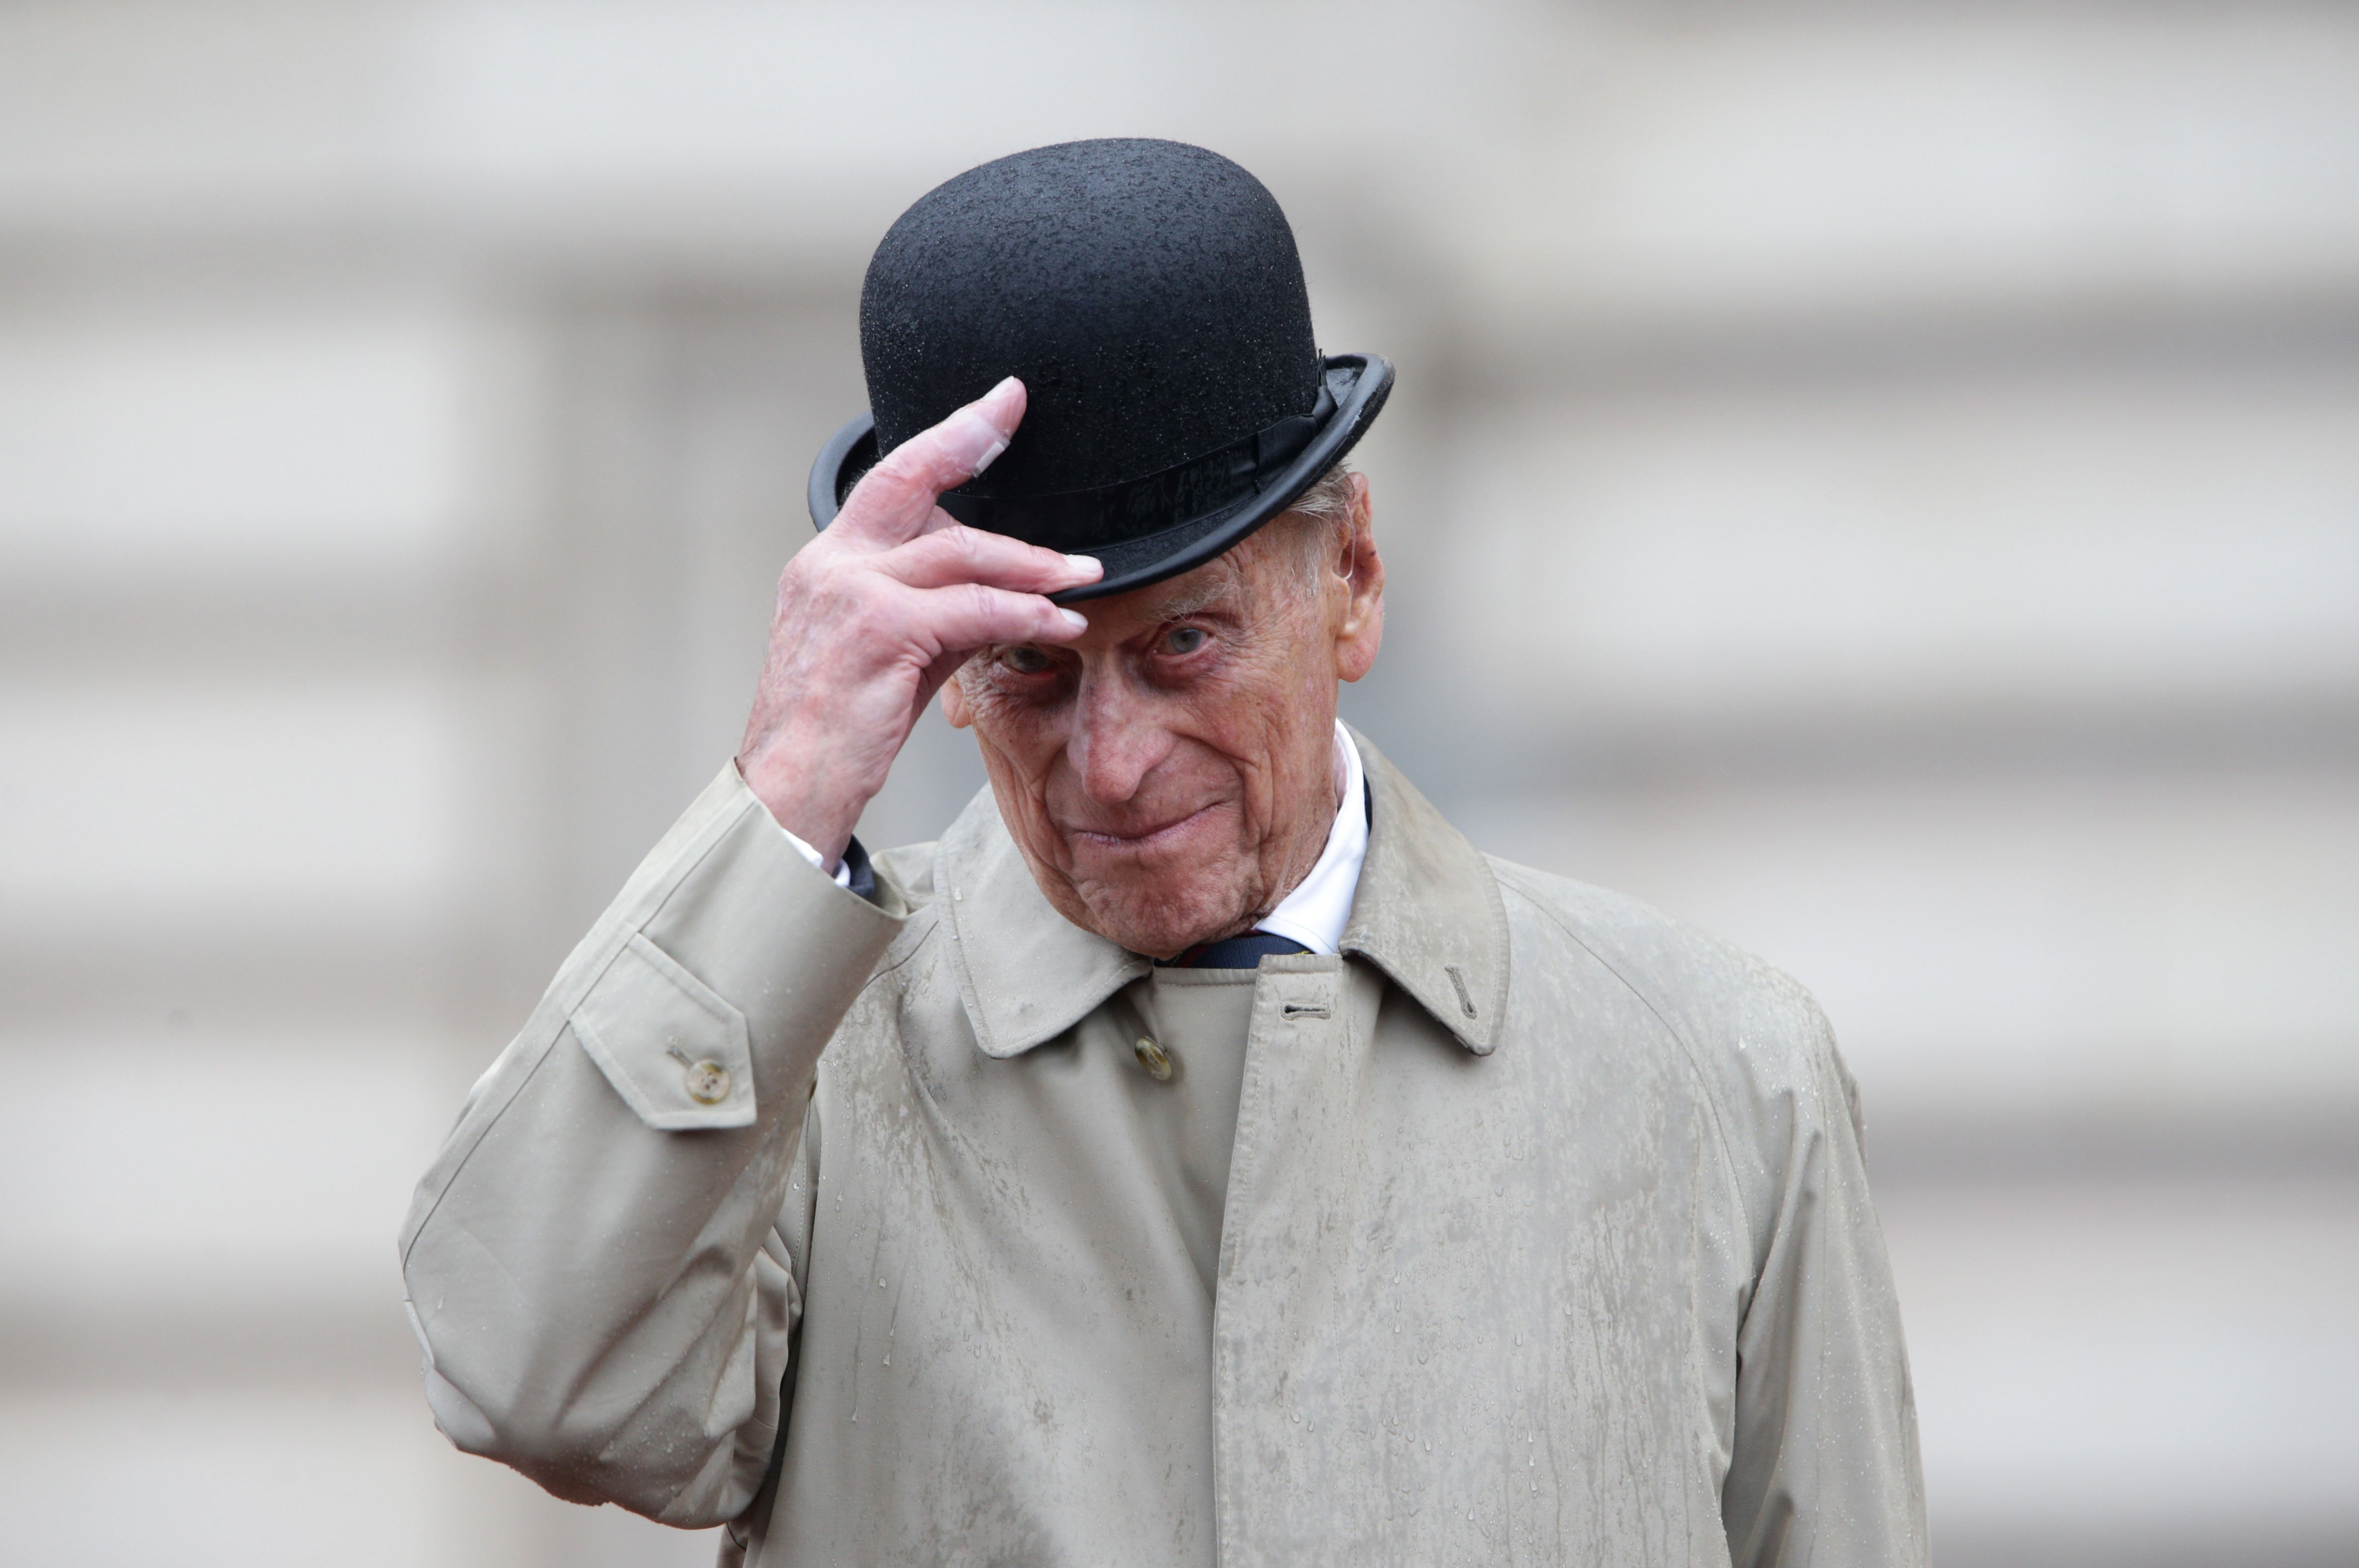 Prince Philip, the 96-year-old husband of Queen Elizabeth II, conductshis final solo public engagement on August 2, 2017